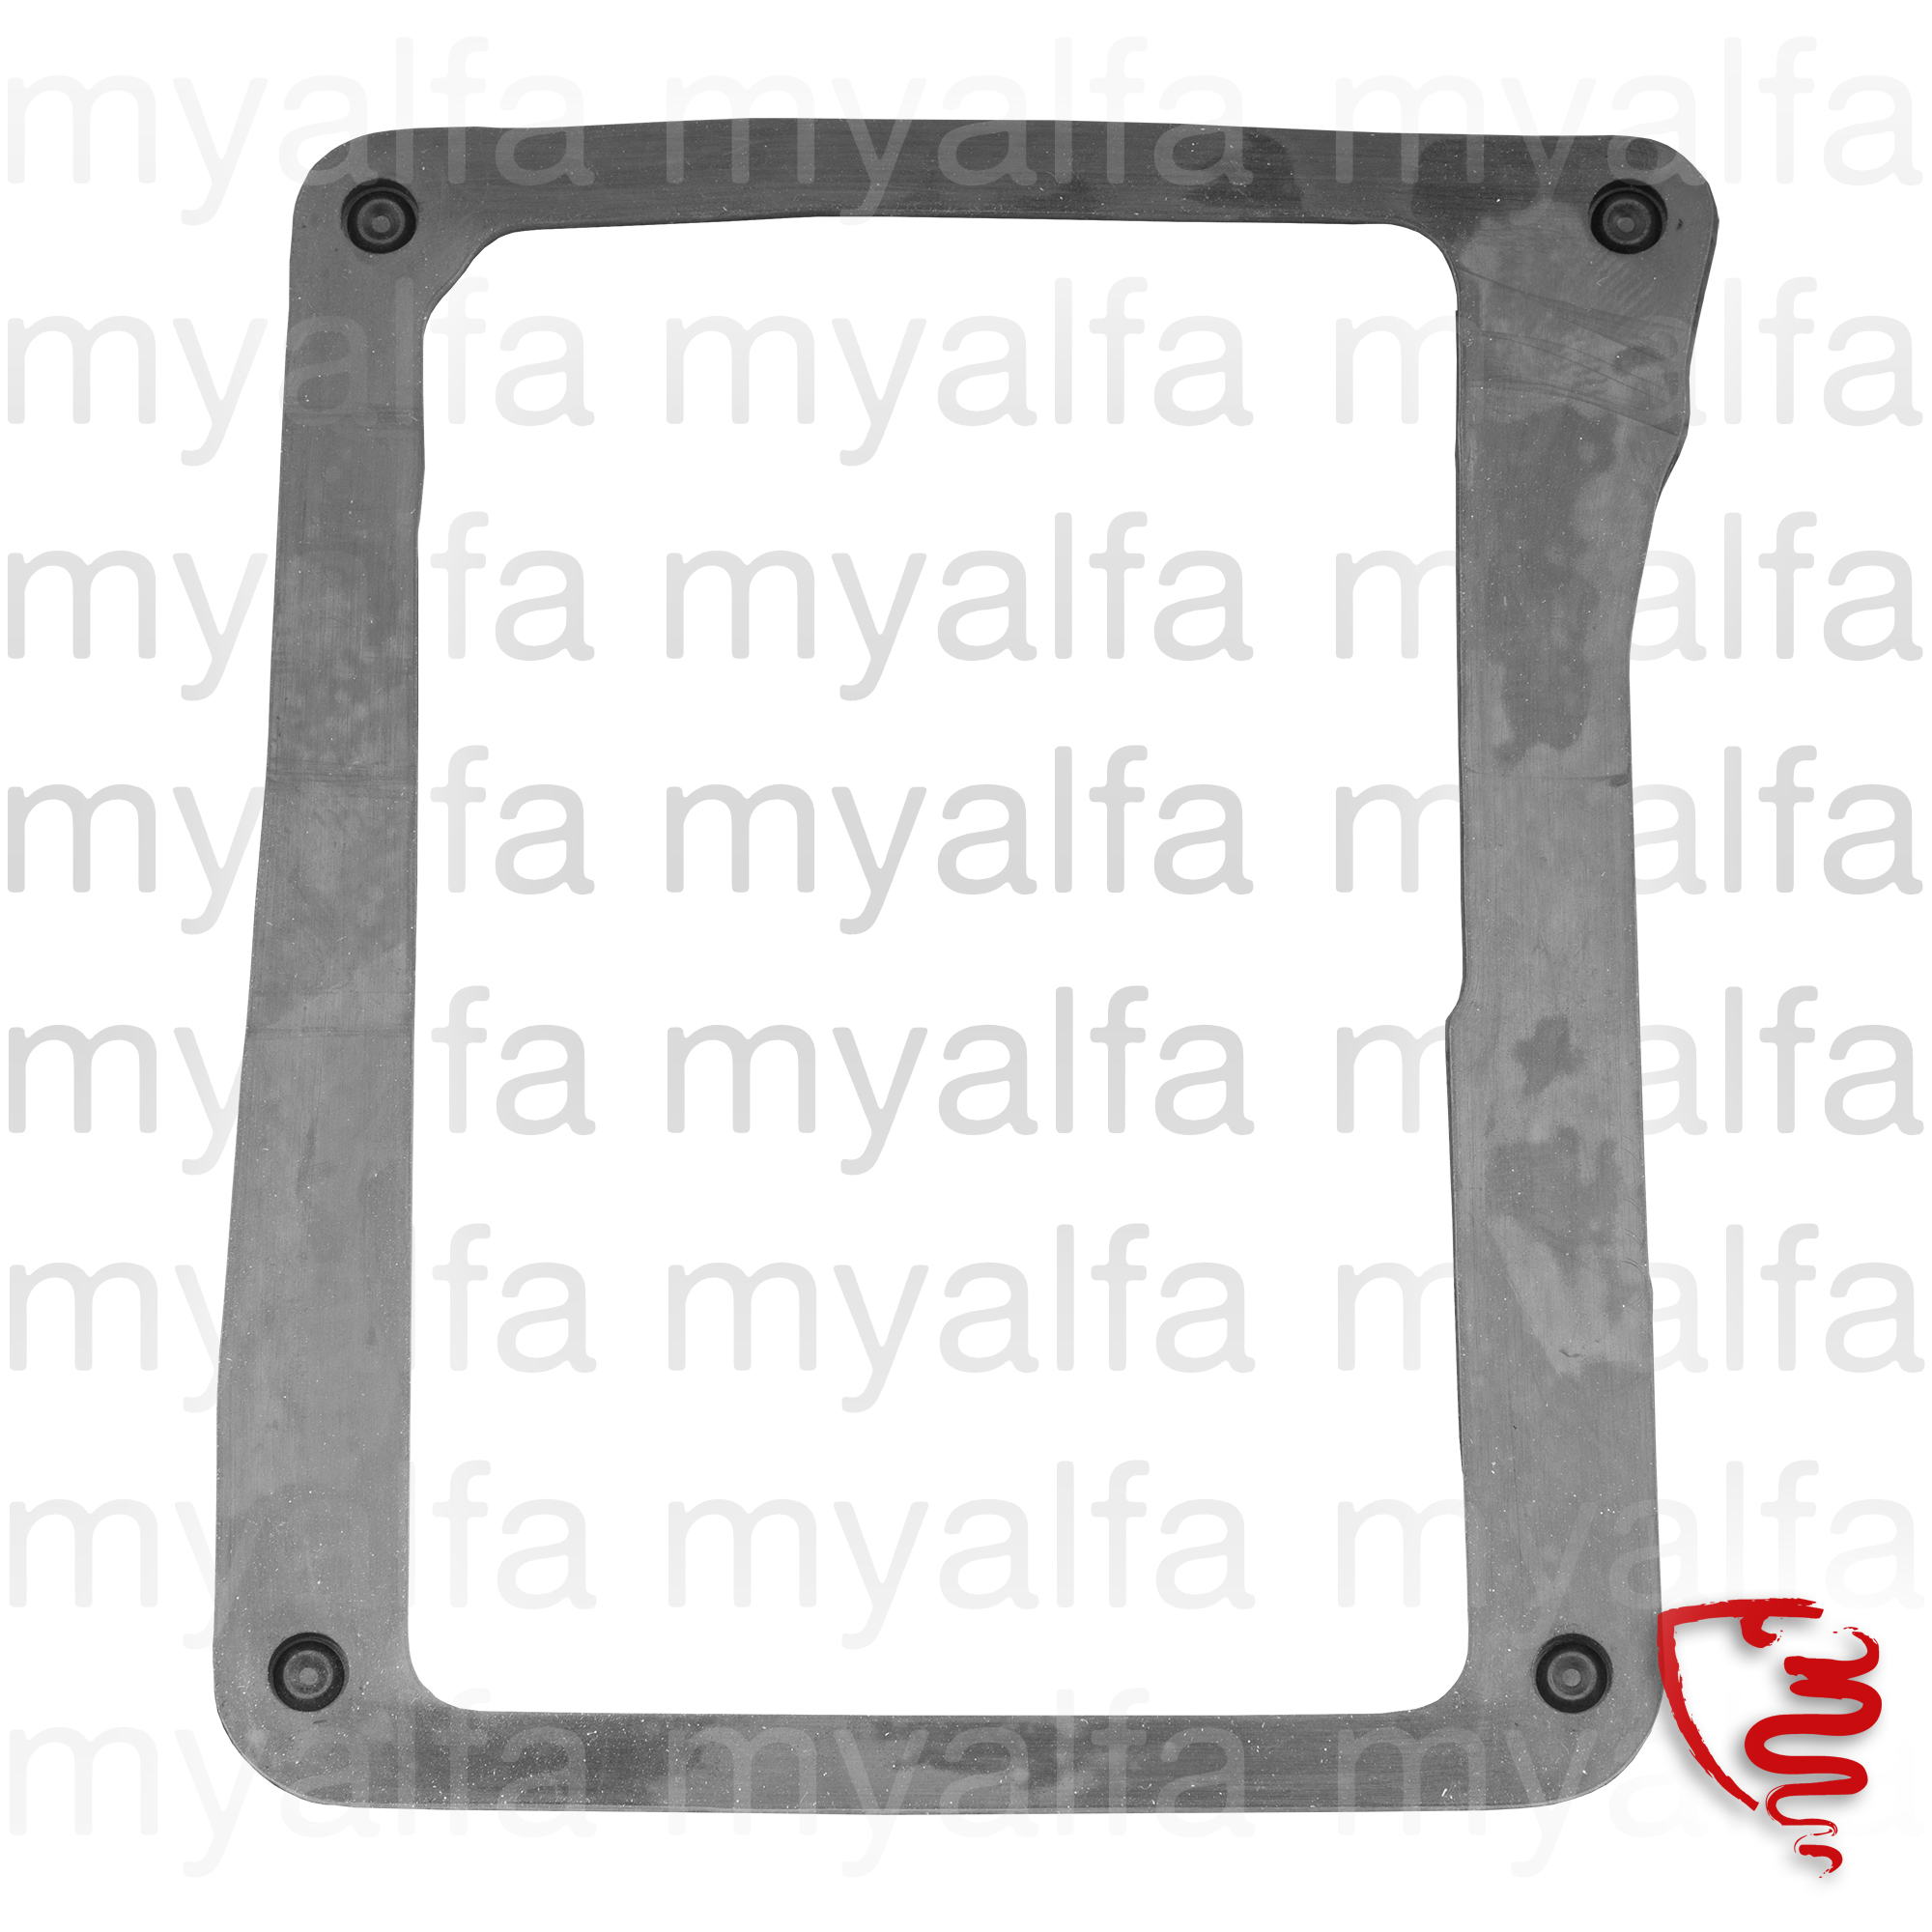 Rubber the suspended floorboard frame for 105/115, Pedals